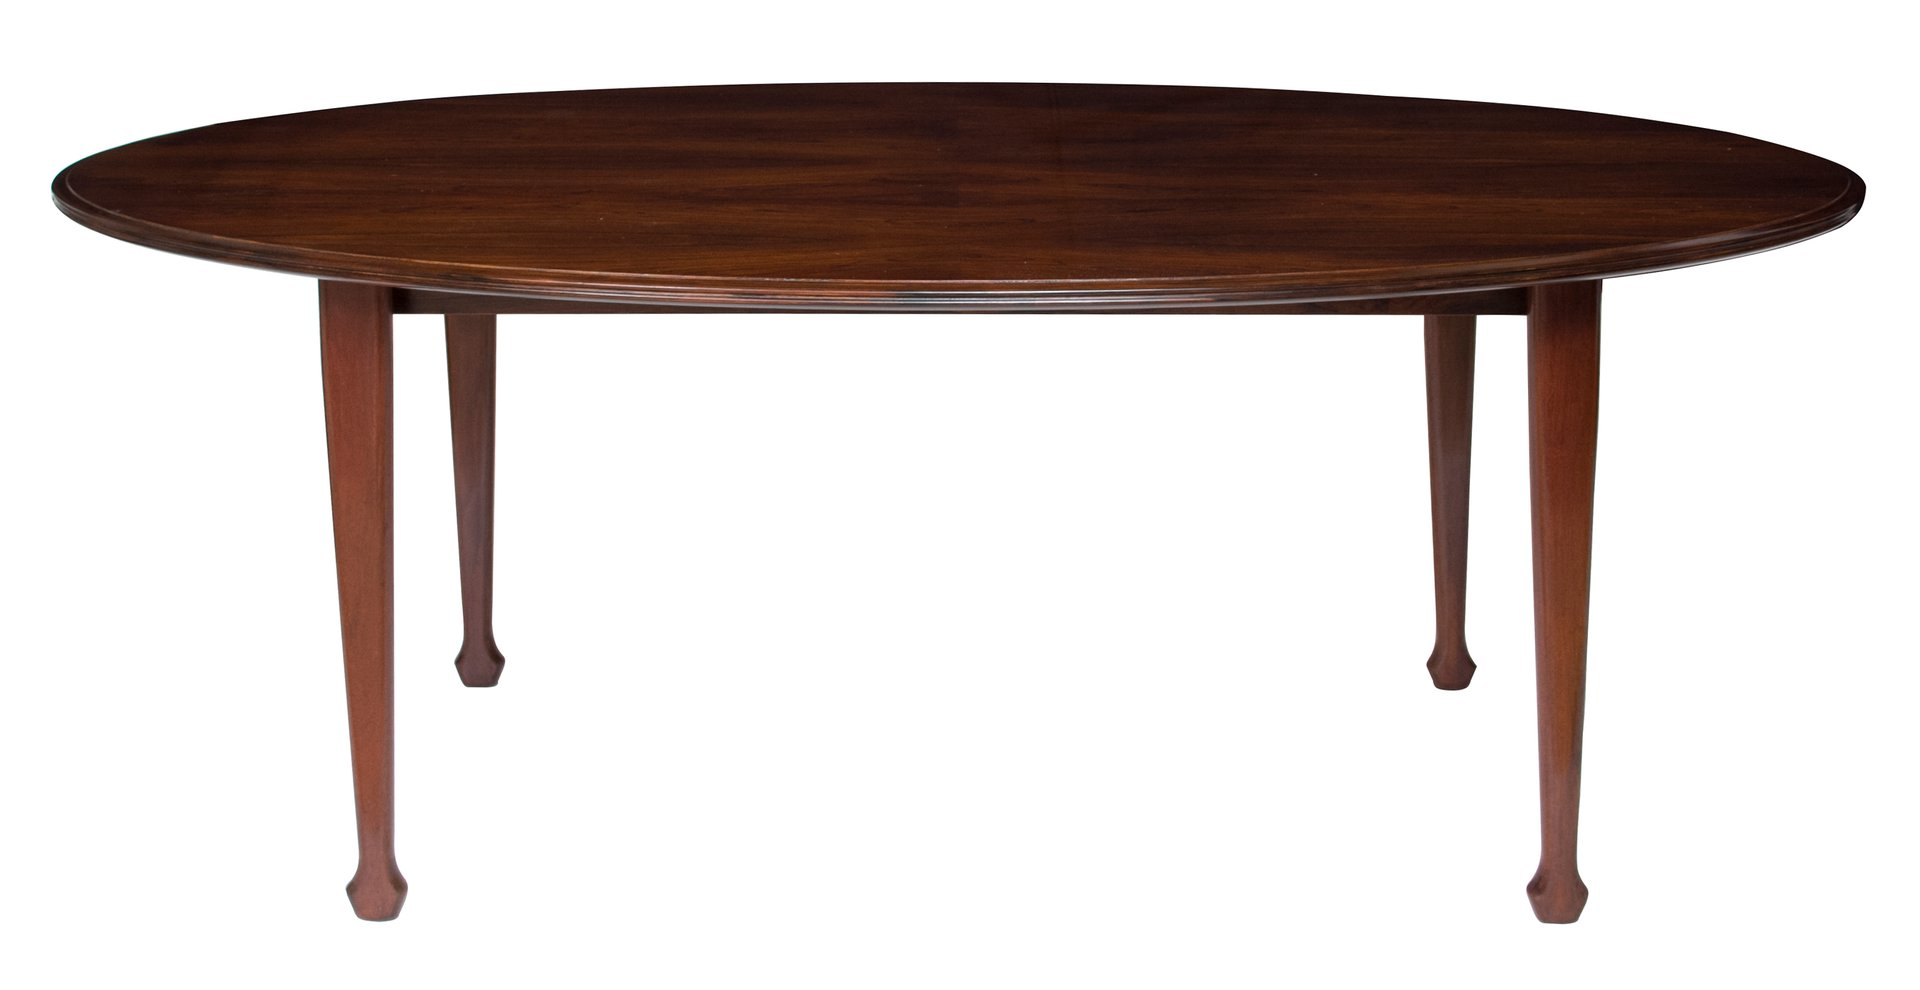 Oval Rosewood Dining Table By Andrew J. Milne, 1960s